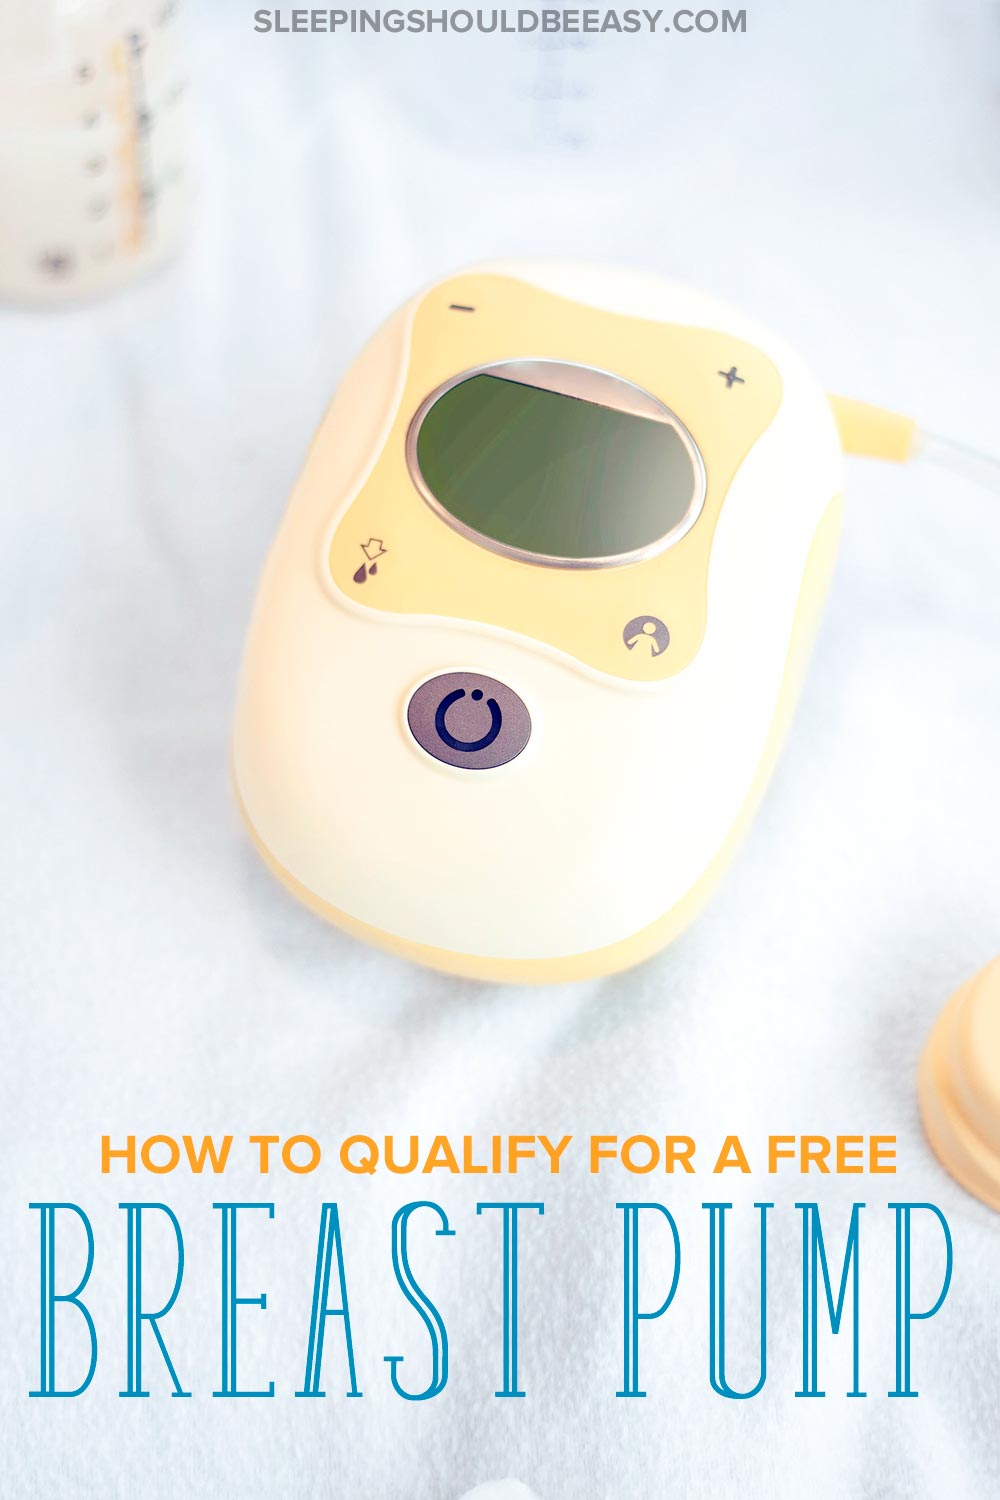 Interested in receiving breast pump insurance coverage, but overwhelmed with all the steps? Learn one simple way to take the stress out of the process. #breastpump